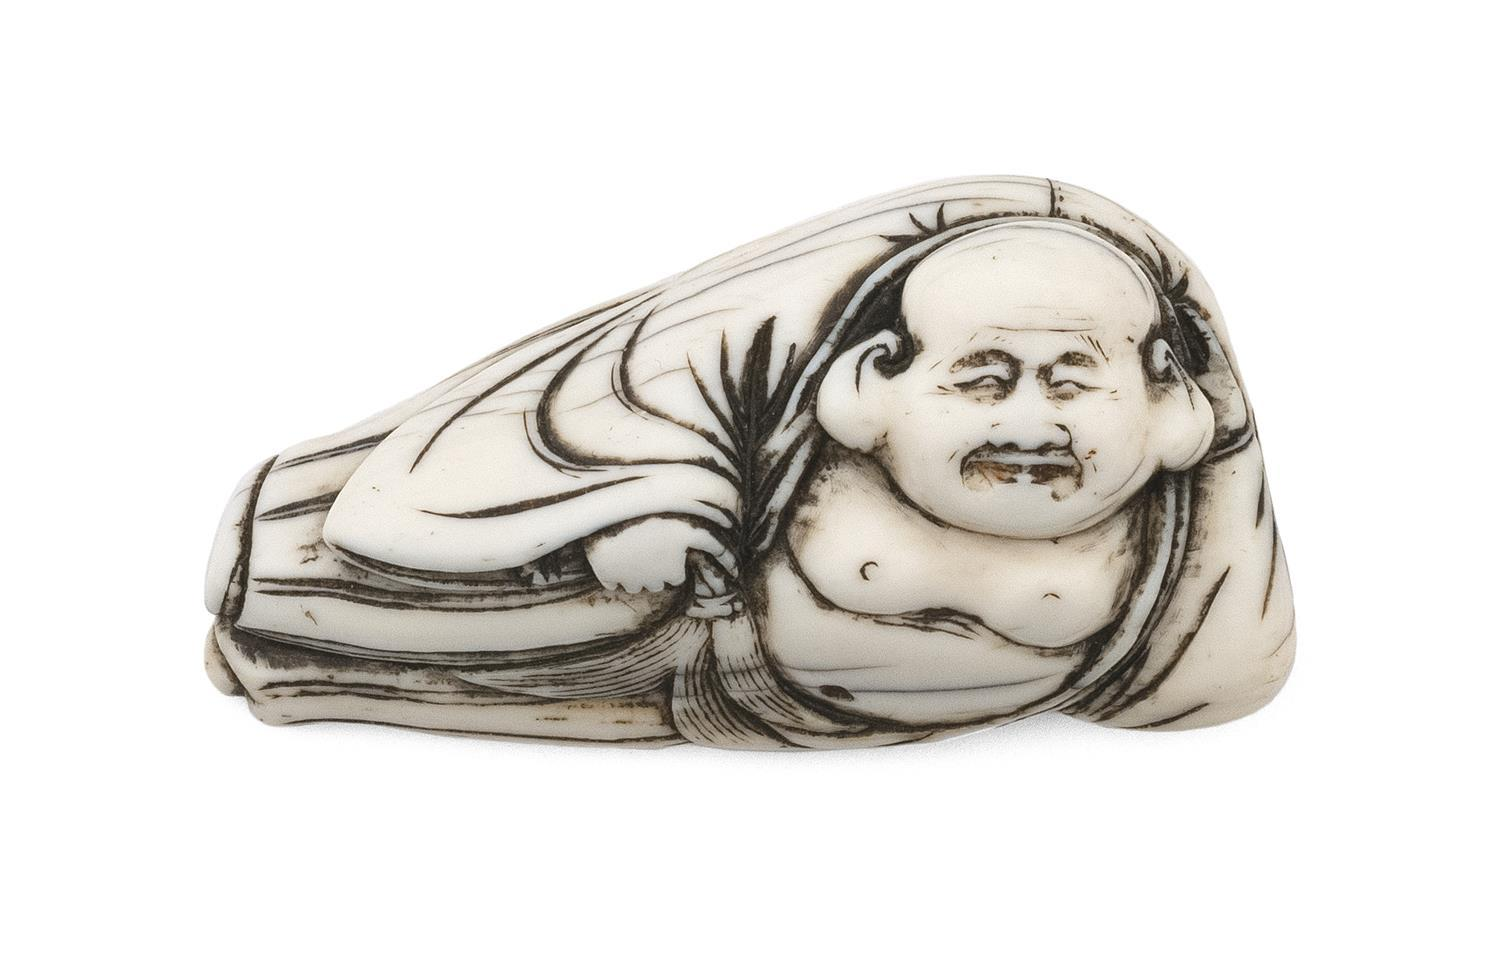 "JAPANESE IVORY NETSUKE In the form of reclining Hoteh holding his treasure sack and a fly whisk. Length 2.5"". Not available for inte..."